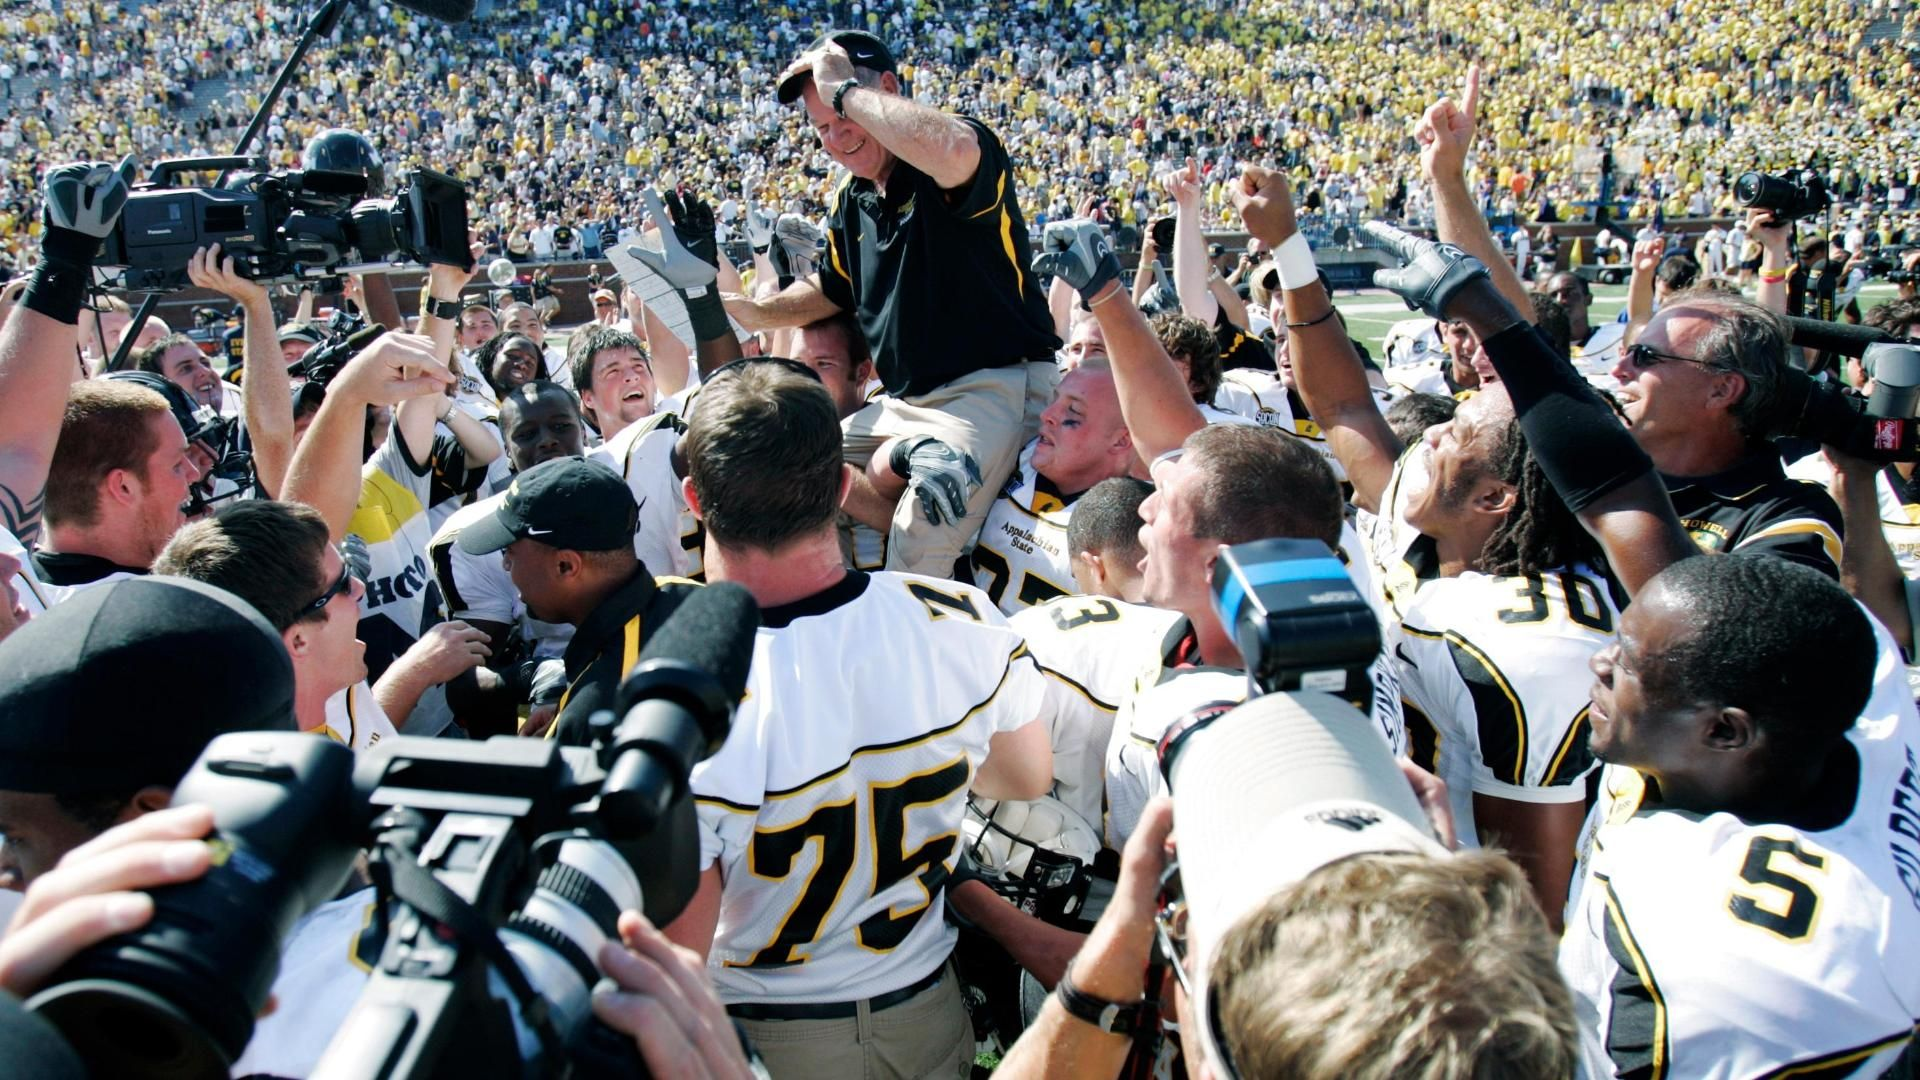 App State looks back at legendary upset of Michigan